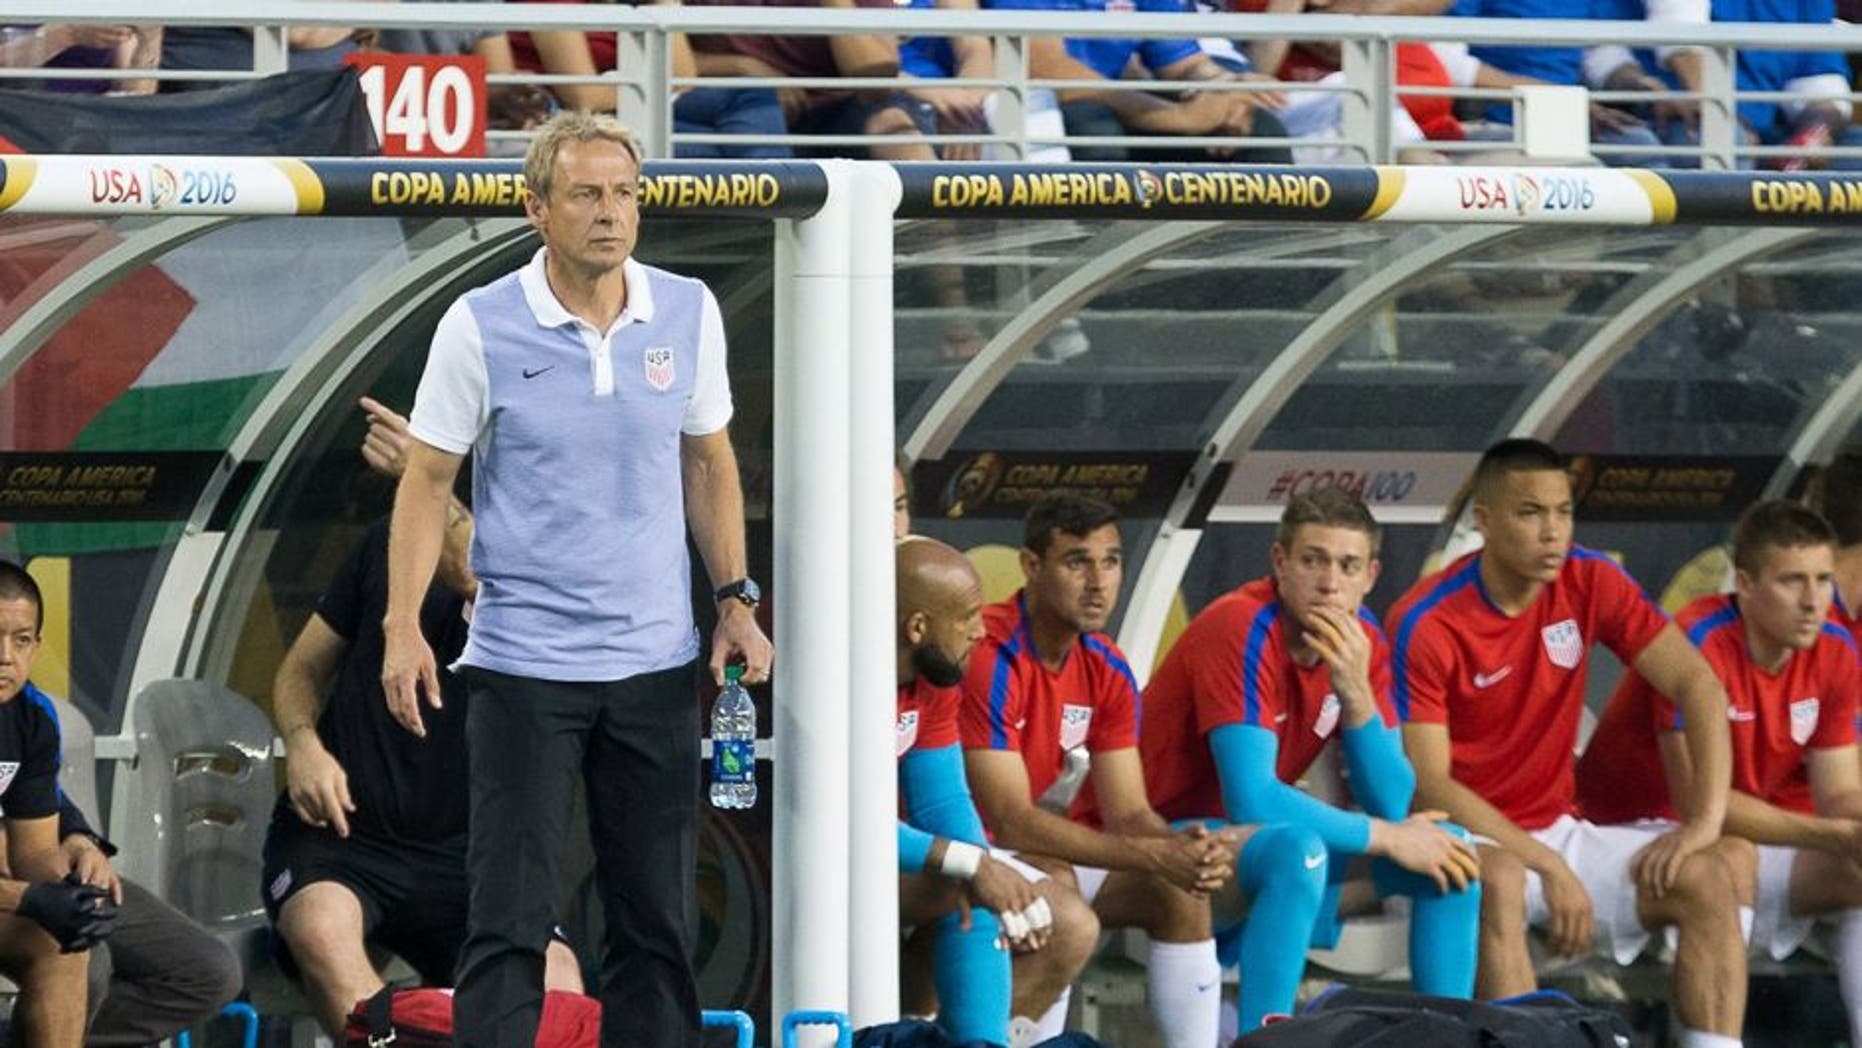 Jun 3, 2016; Santa Clara, CA, USA; United States head coach Jurgen Klinsmann (C) stands on the sideline against Colombia in the second half during the group play stage of the 2016 Copa America Centenario at Levi's Stadium. Colombia won 2-0. Mandatory Credit: Kelley L Cox-USA TODAY Sports